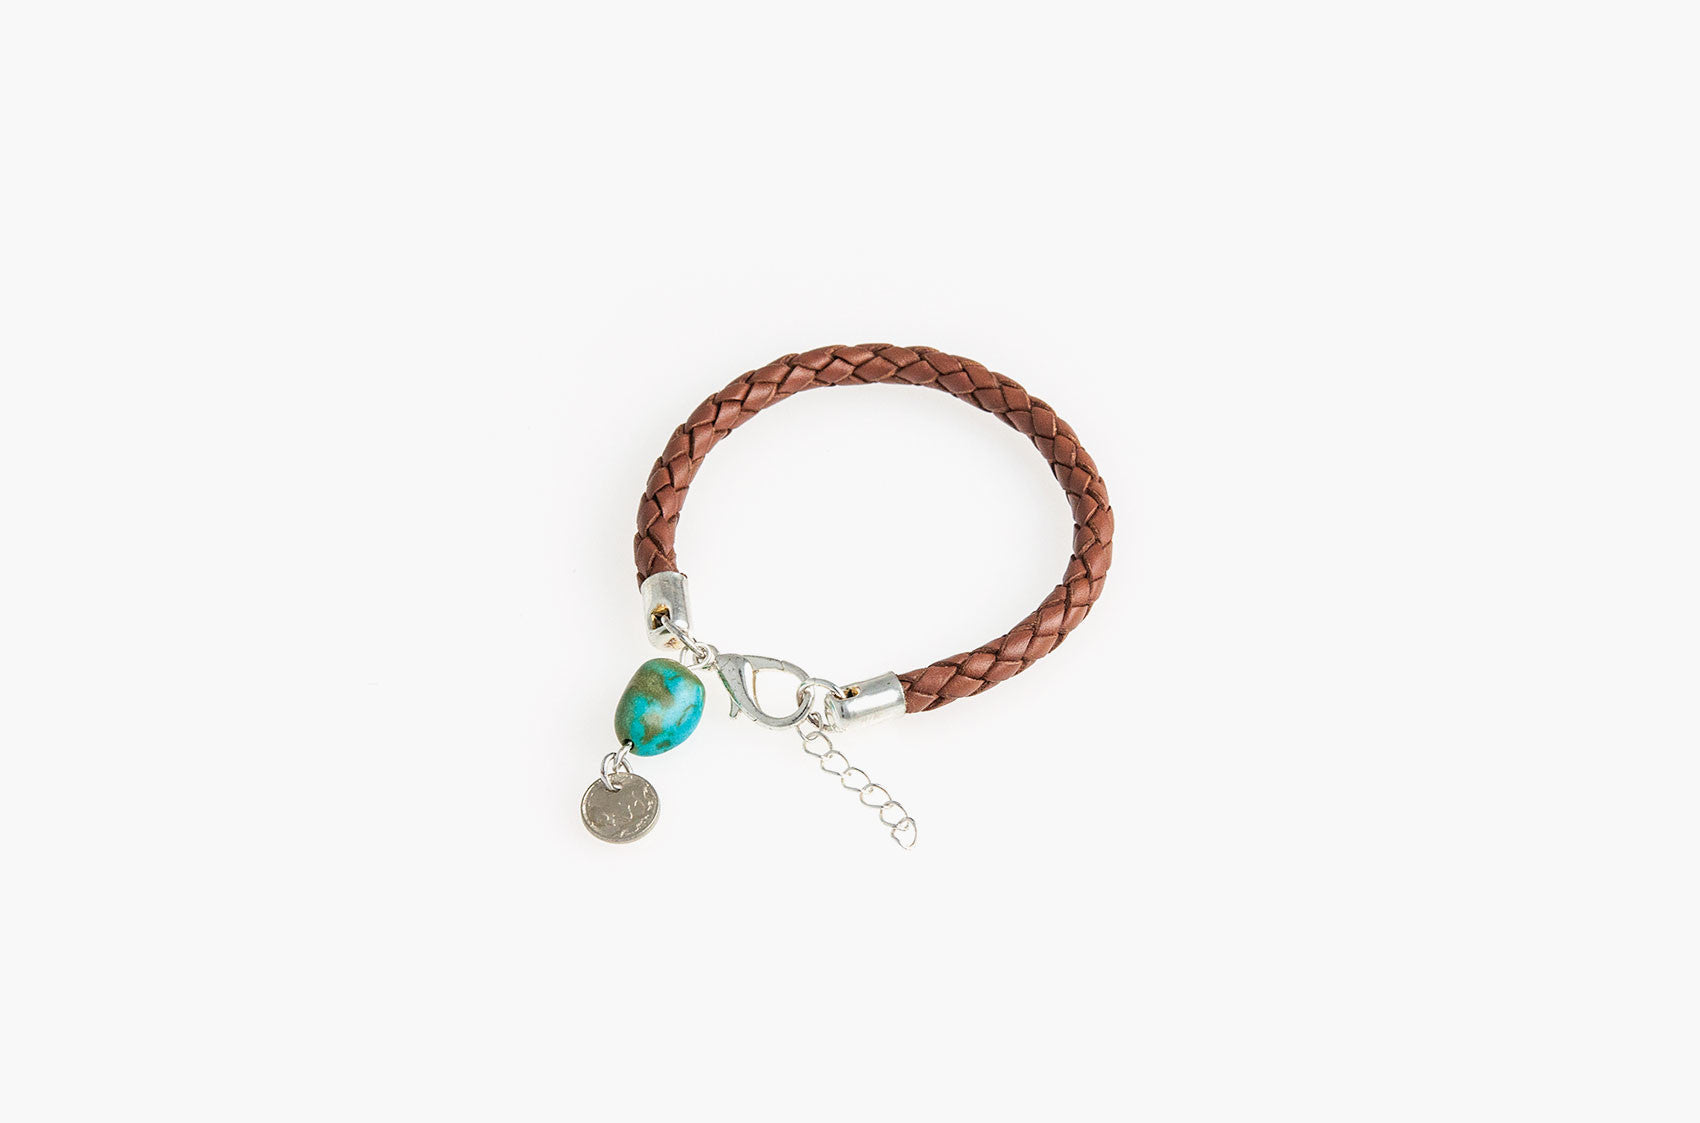 Plaited leather and turquoise bracelet